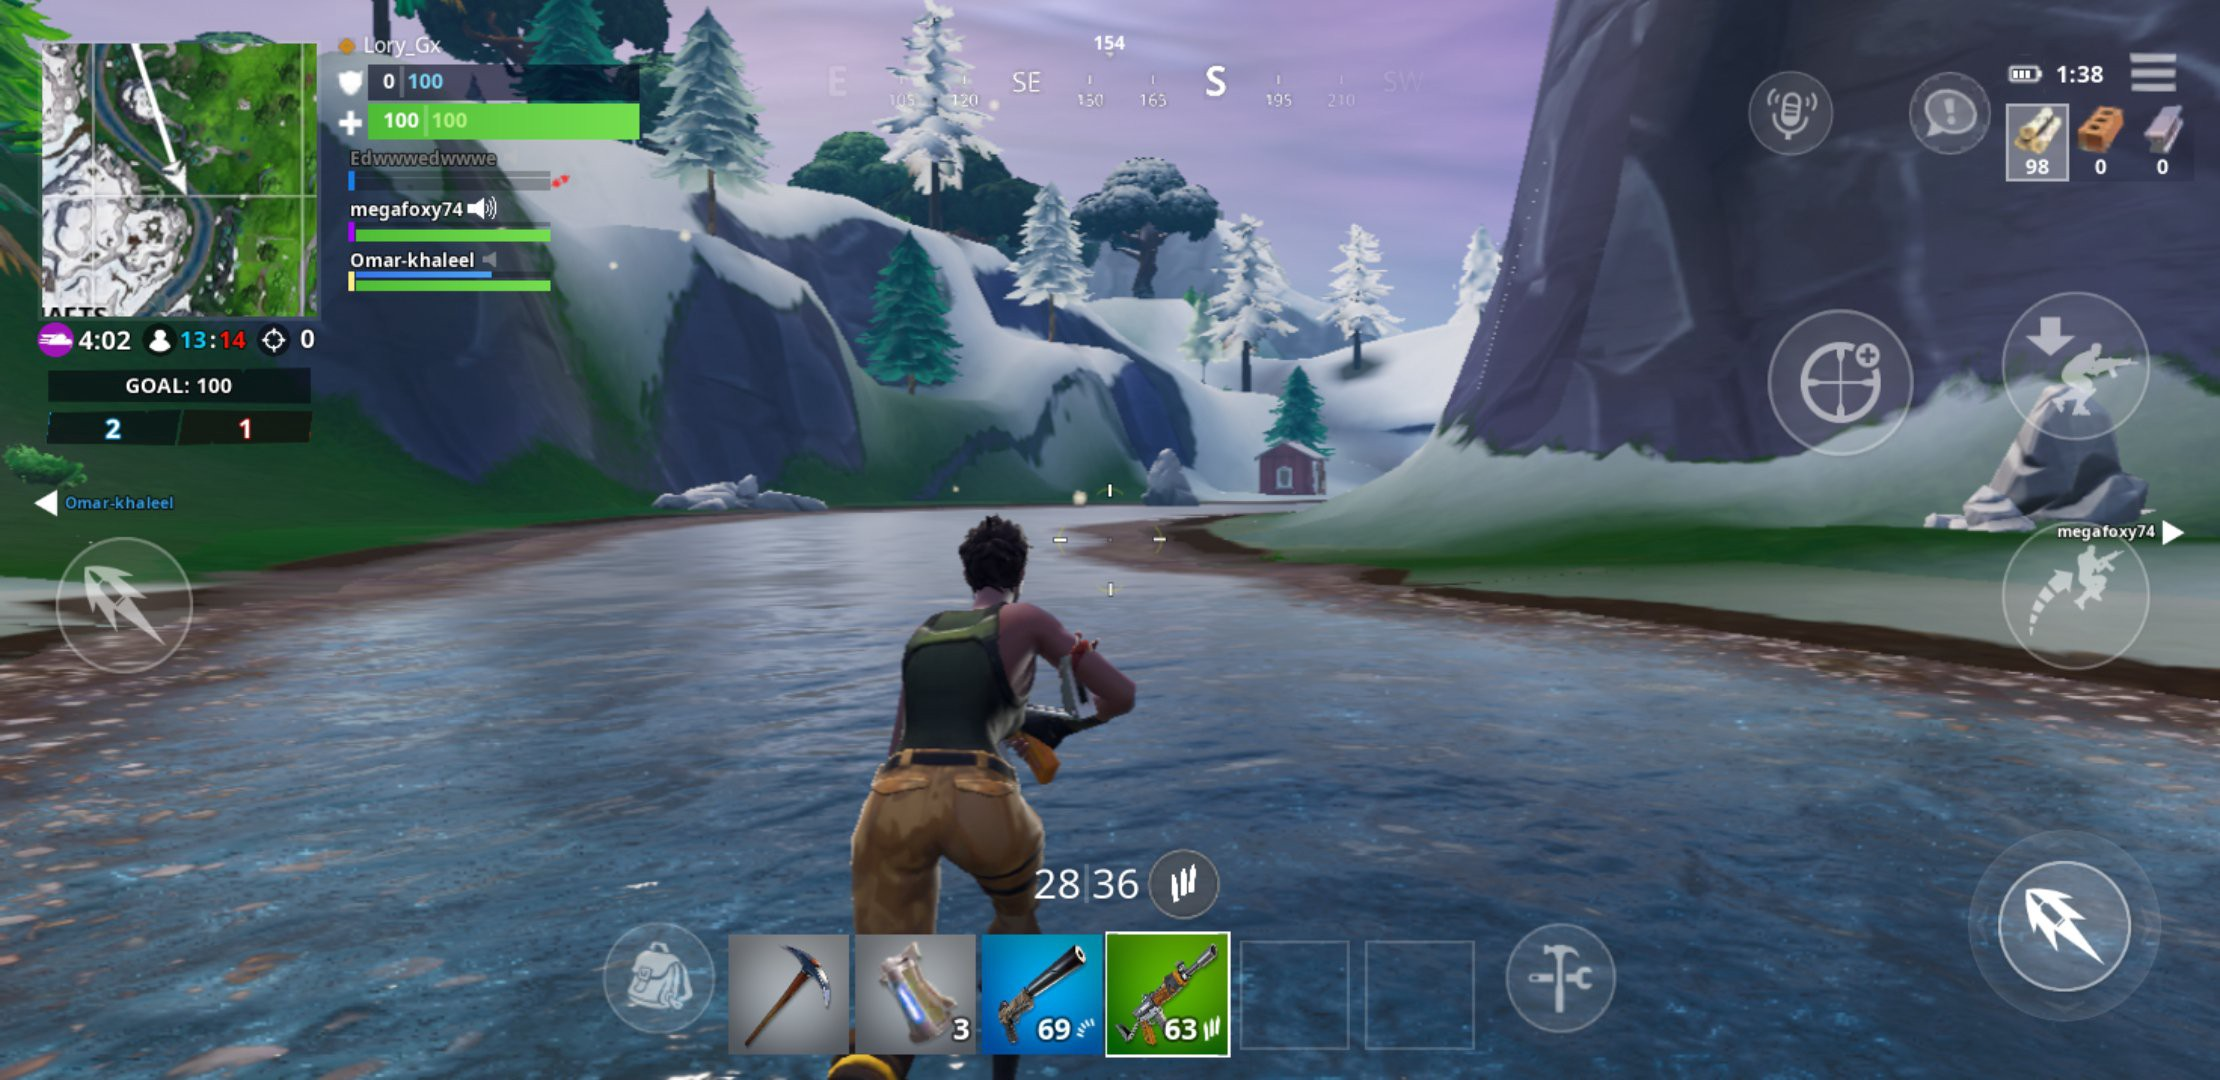 Fortnite Cheat Codes Xbox Free Download Online For Mobile